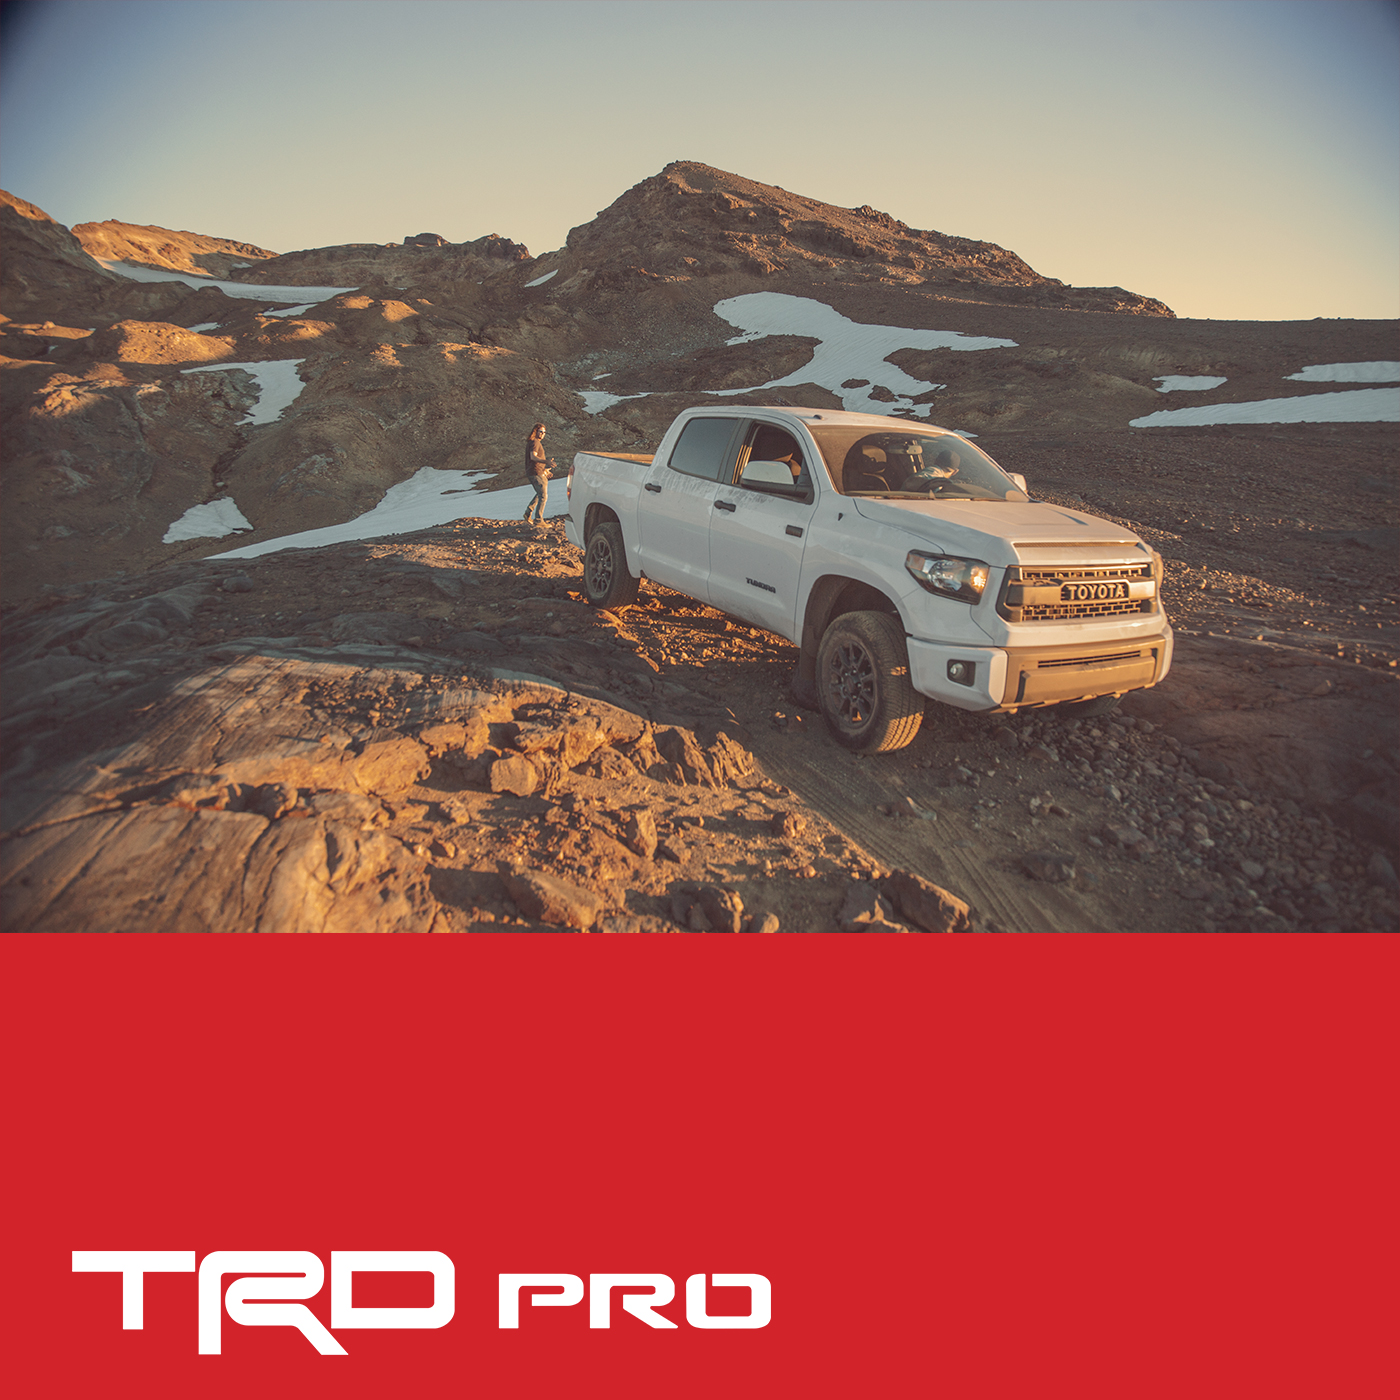 TOYOTA TRD PRO 2015 | VOLCANO HOPPING IN CHILE | MOBILE640